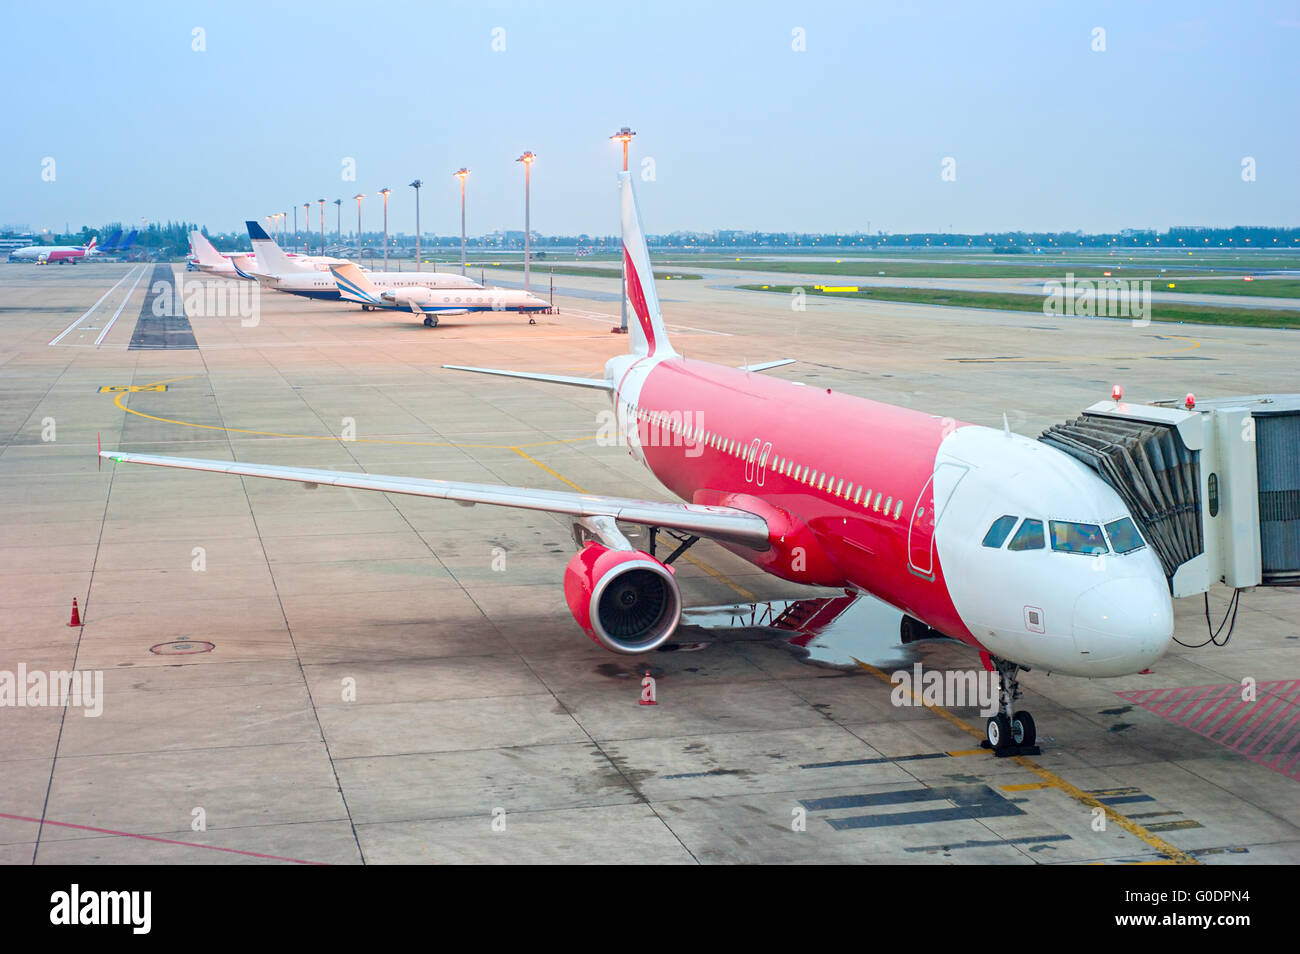 Planes in the airport - Stock Image